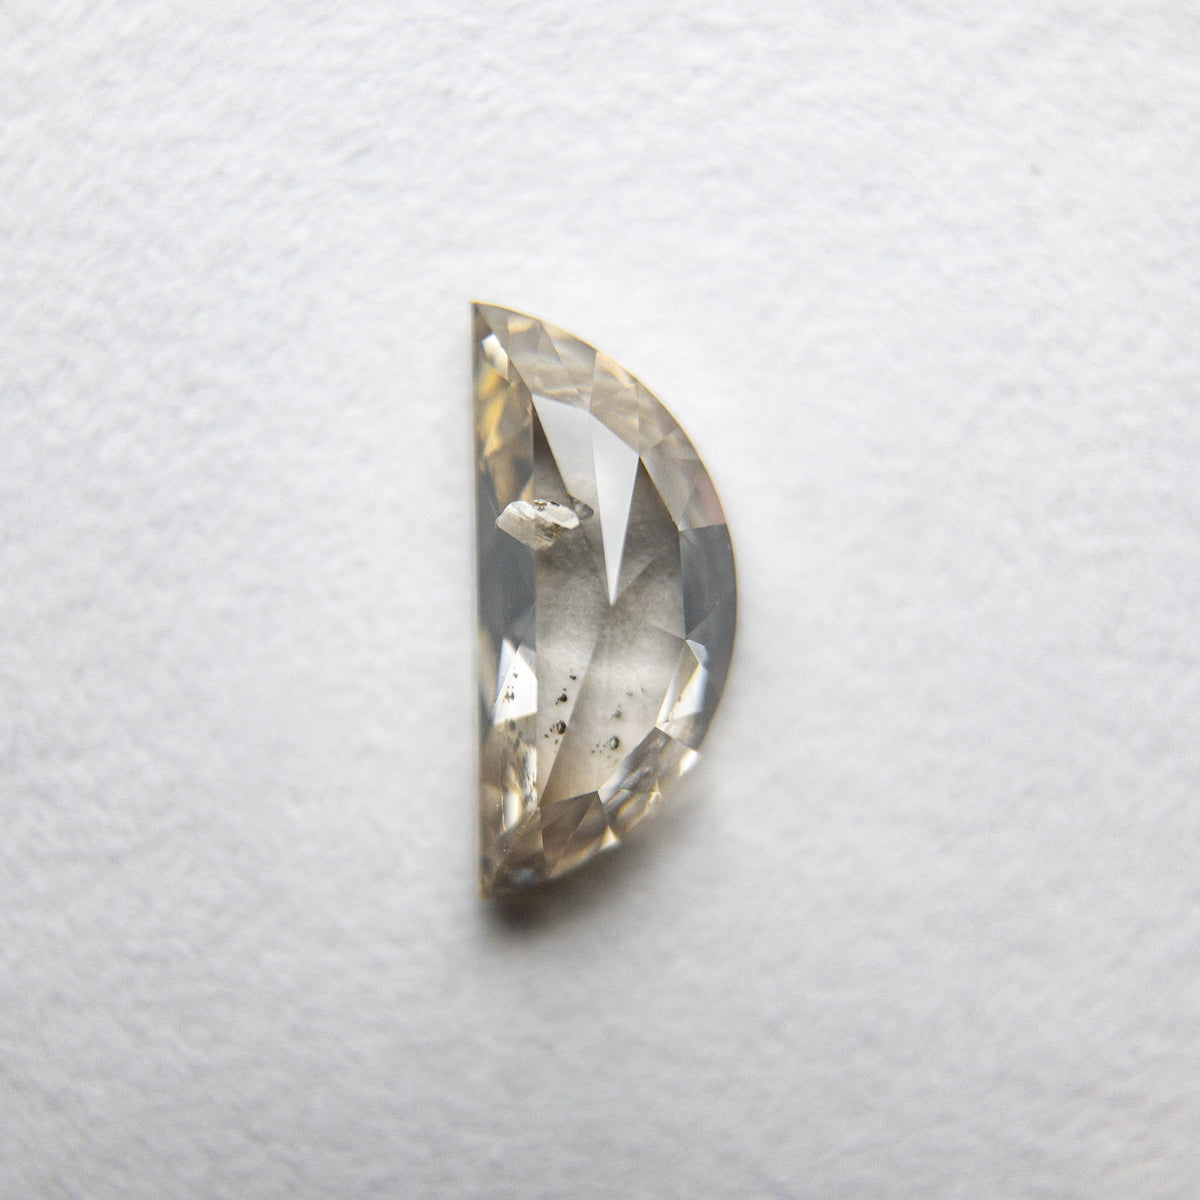 0.57ct 7.72x3.51x2.35mm Half Moon Rosecut 18090-20